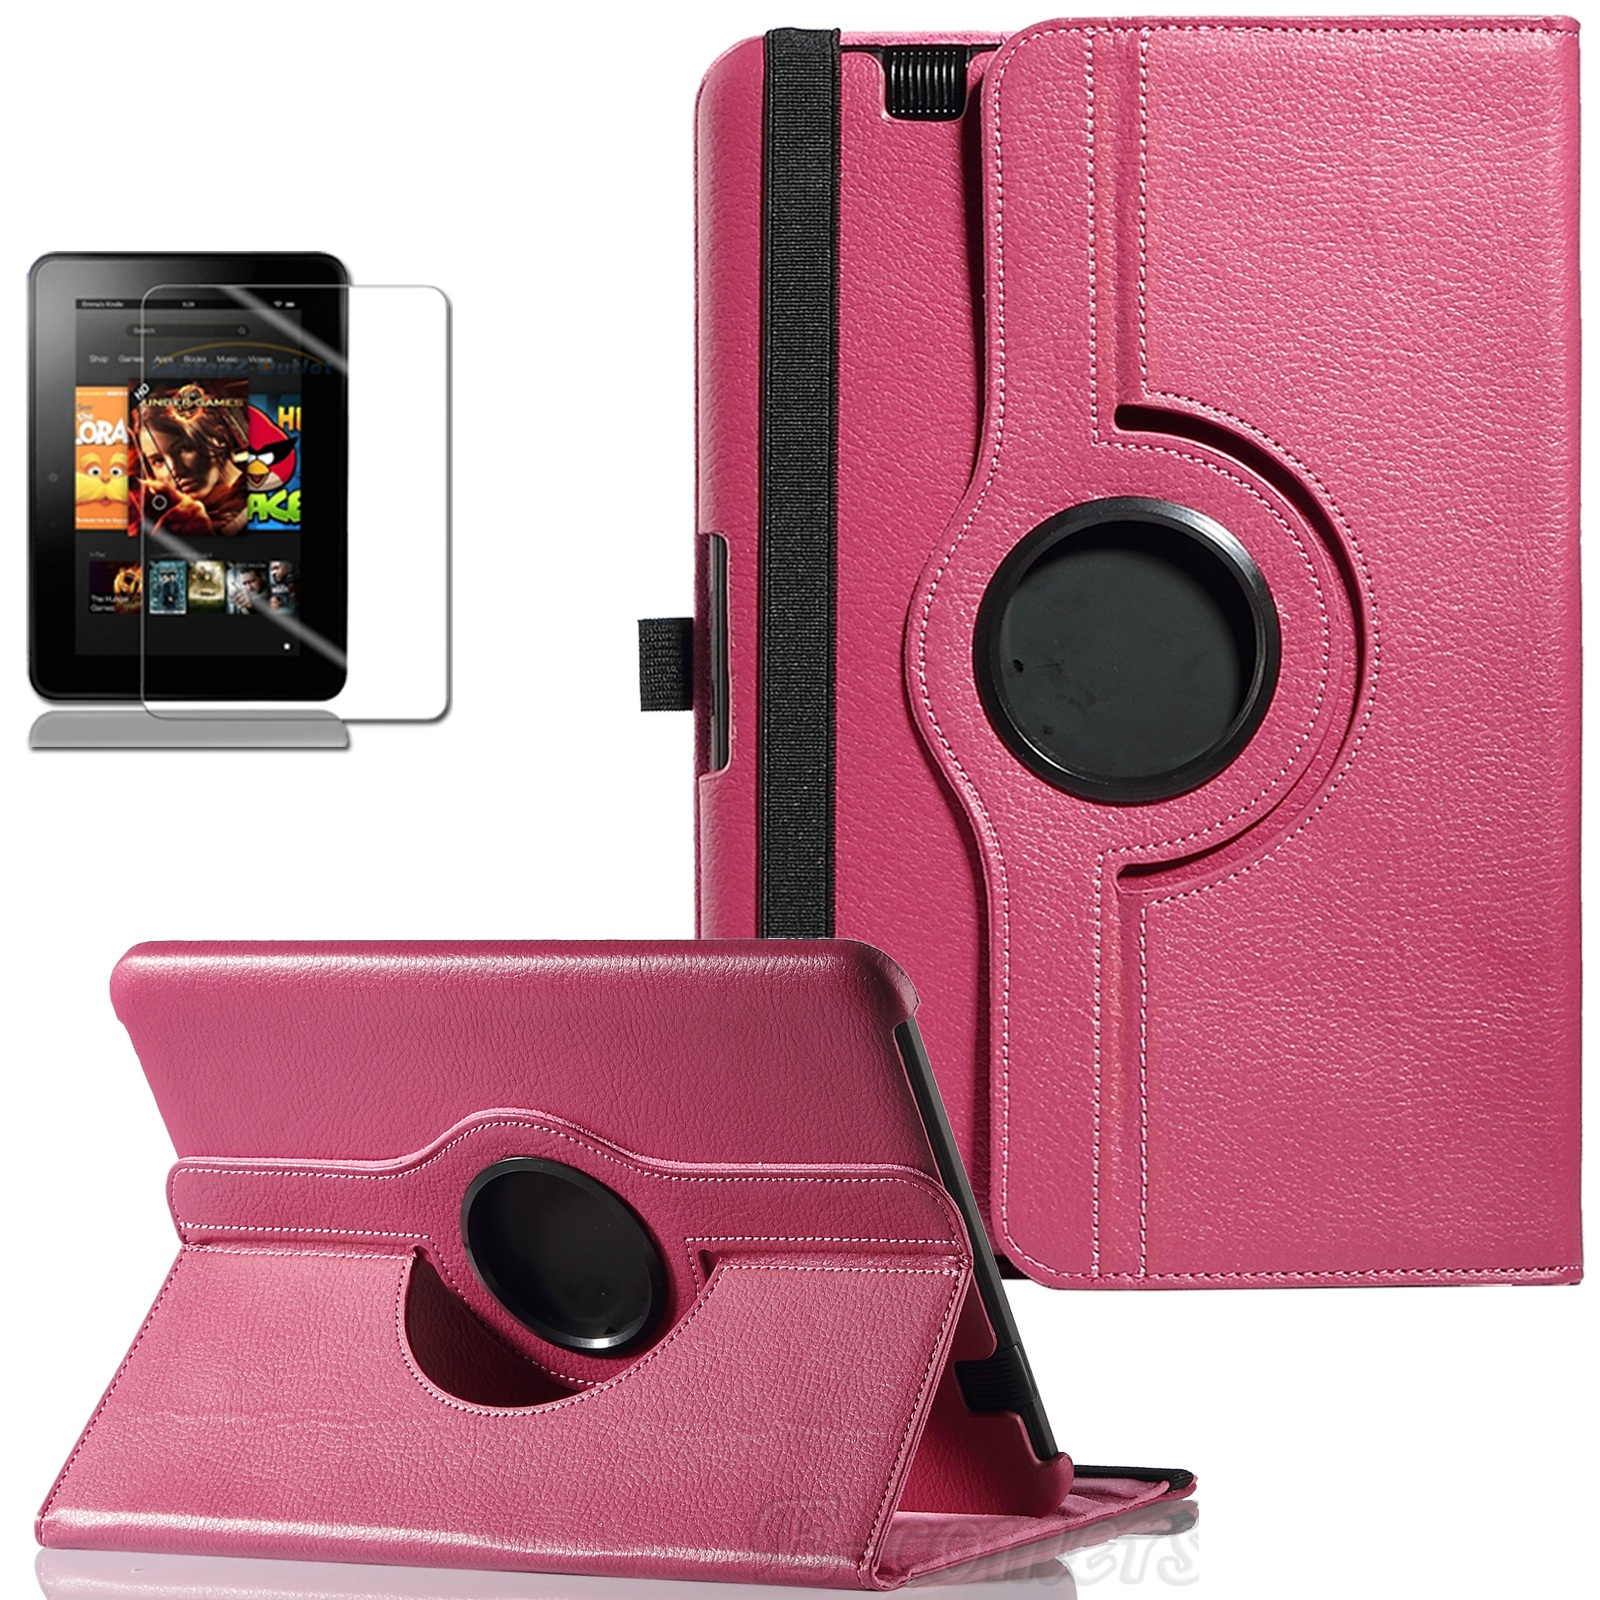 ULAK 360 Rotating PU Leather Case Cover for Kindle Fire HD 8.9 Inch with Smart Cover Auto Wake/Sleep Feature(China (Mainland))